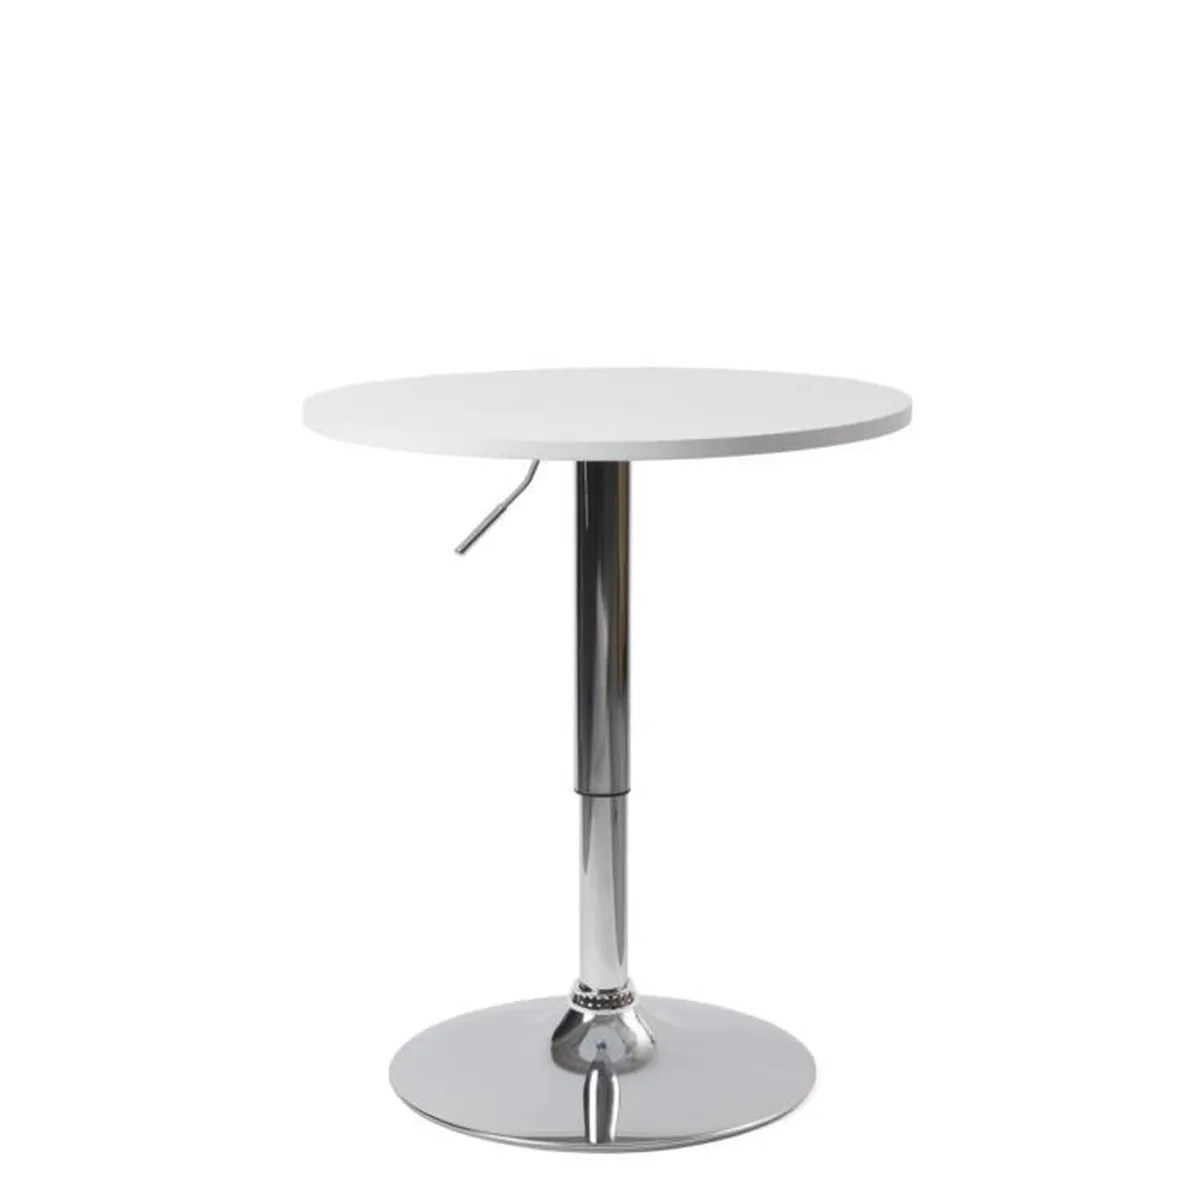 kayelles table de bar design hauteur reglable plateau mdf ronde 60cm blanc